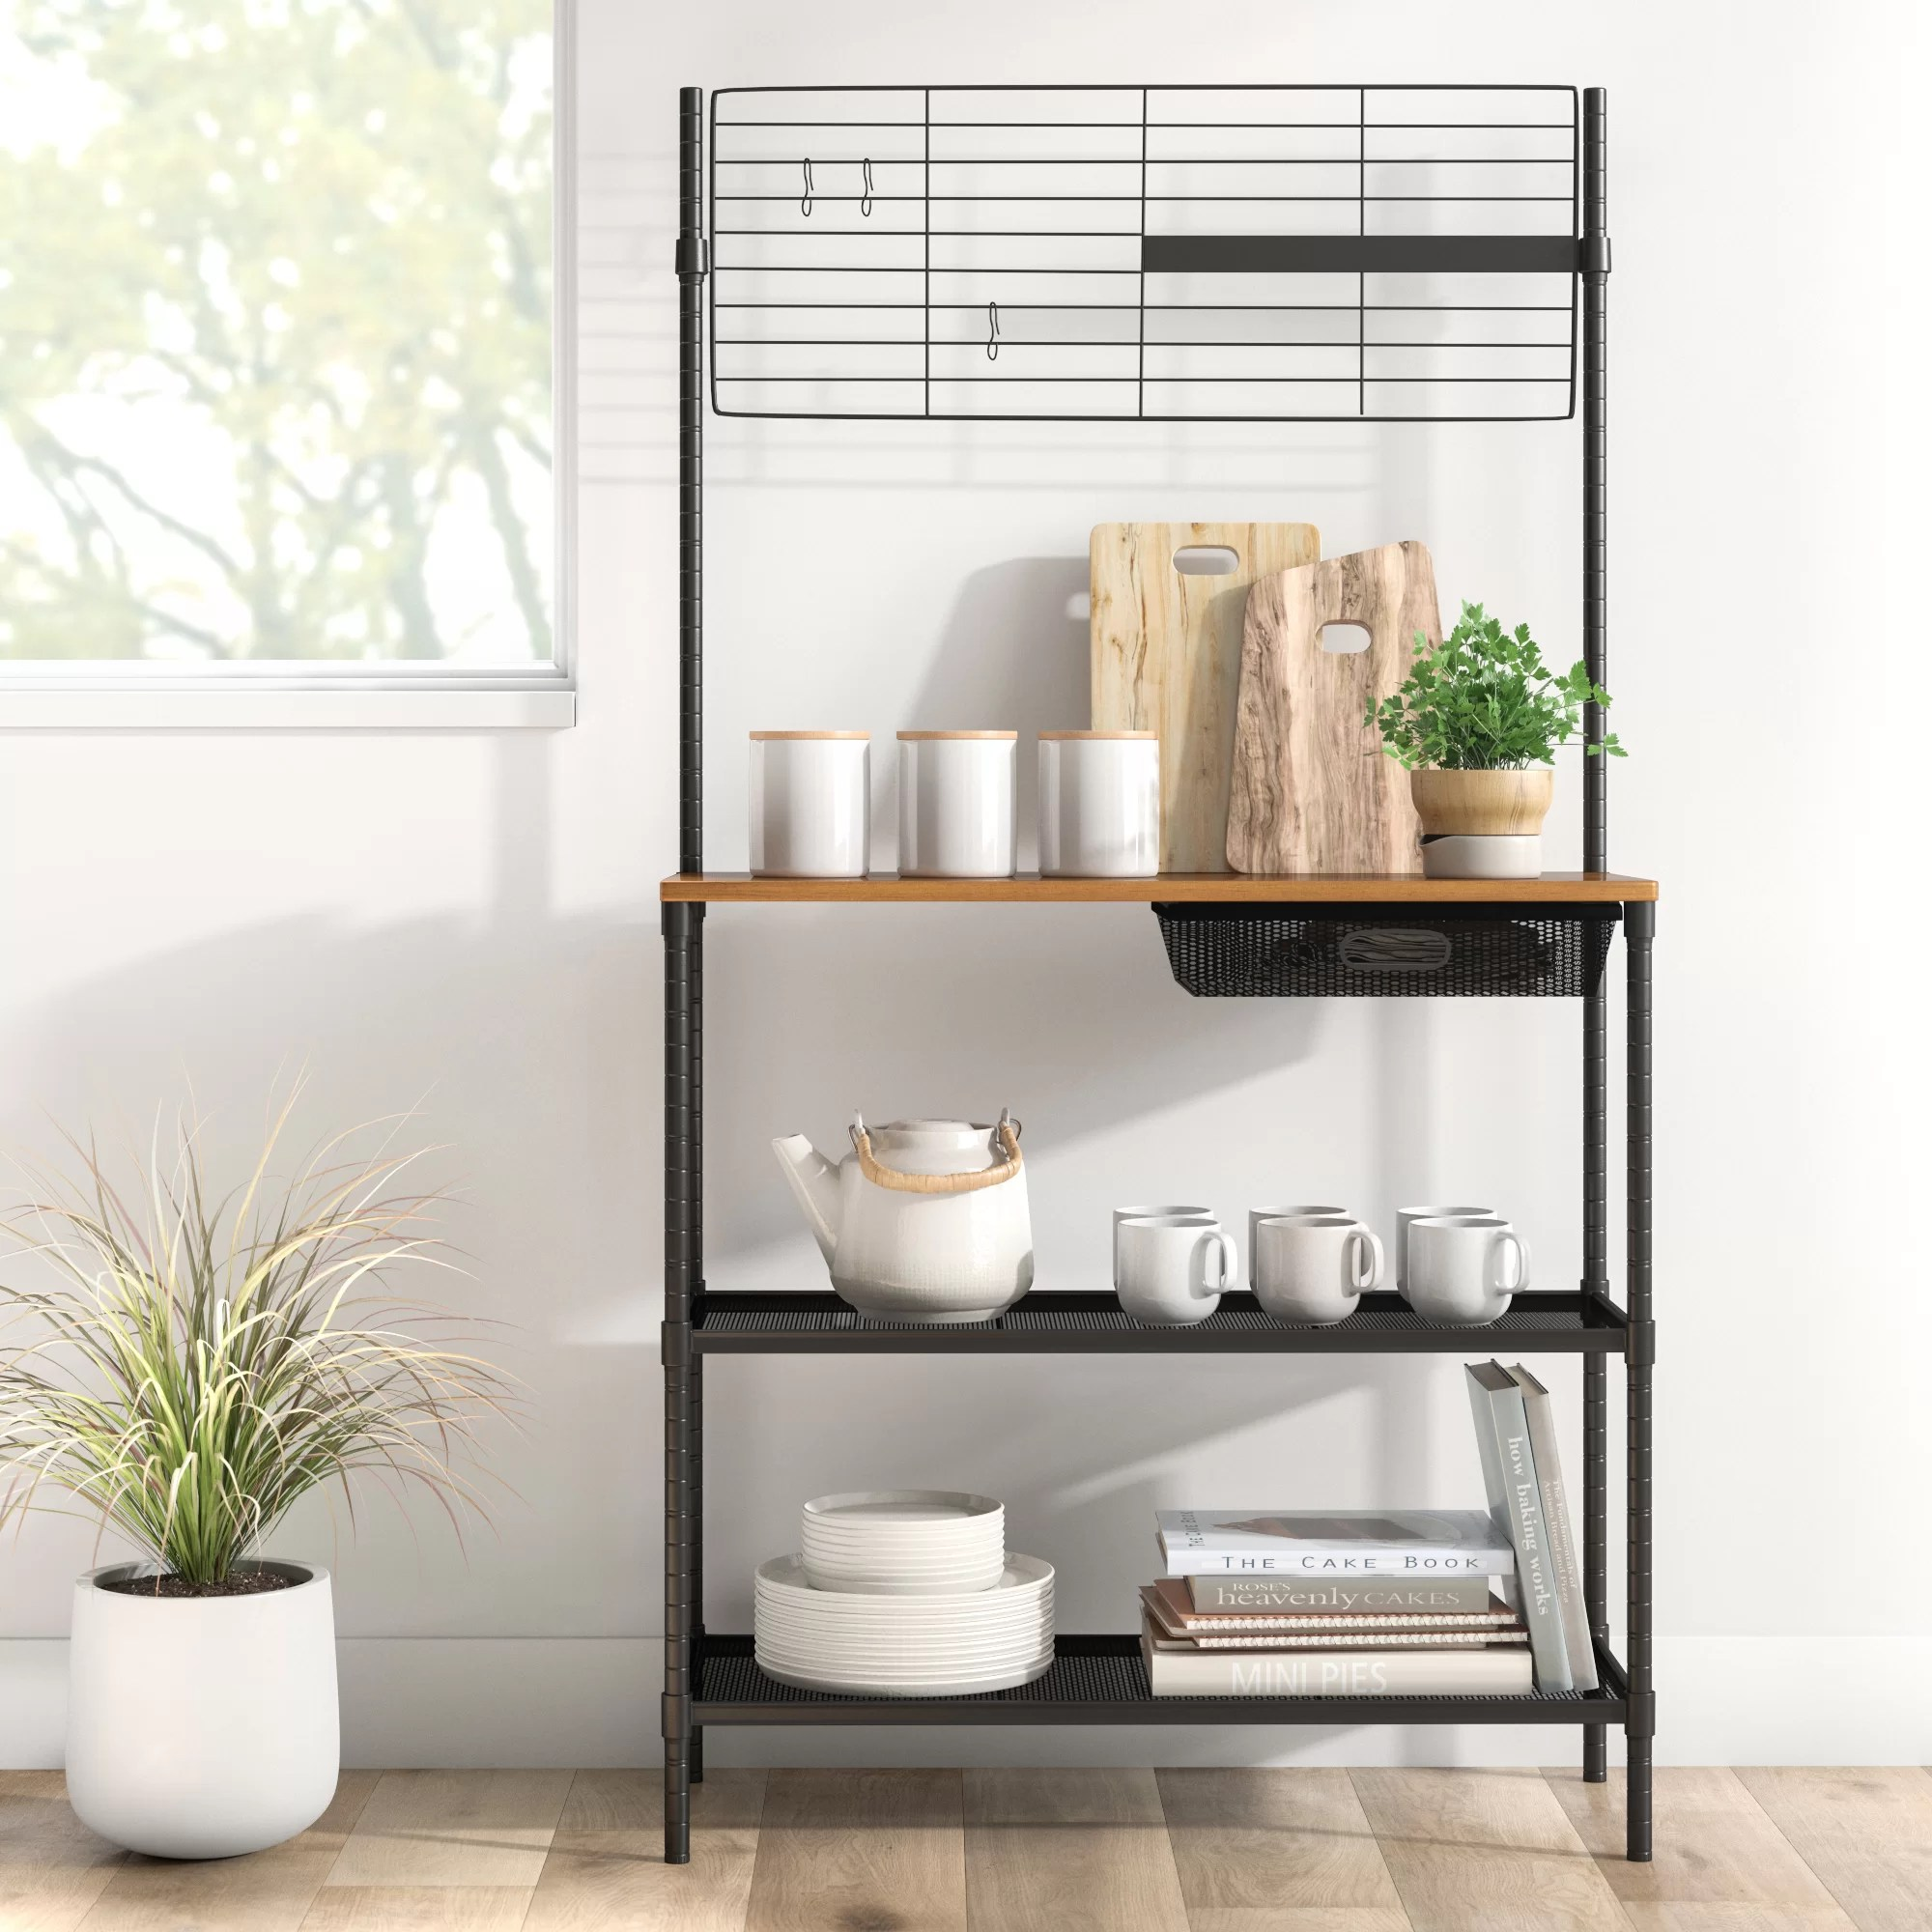 daphne 35 8 steel standard baker s rack with microwave compatibility